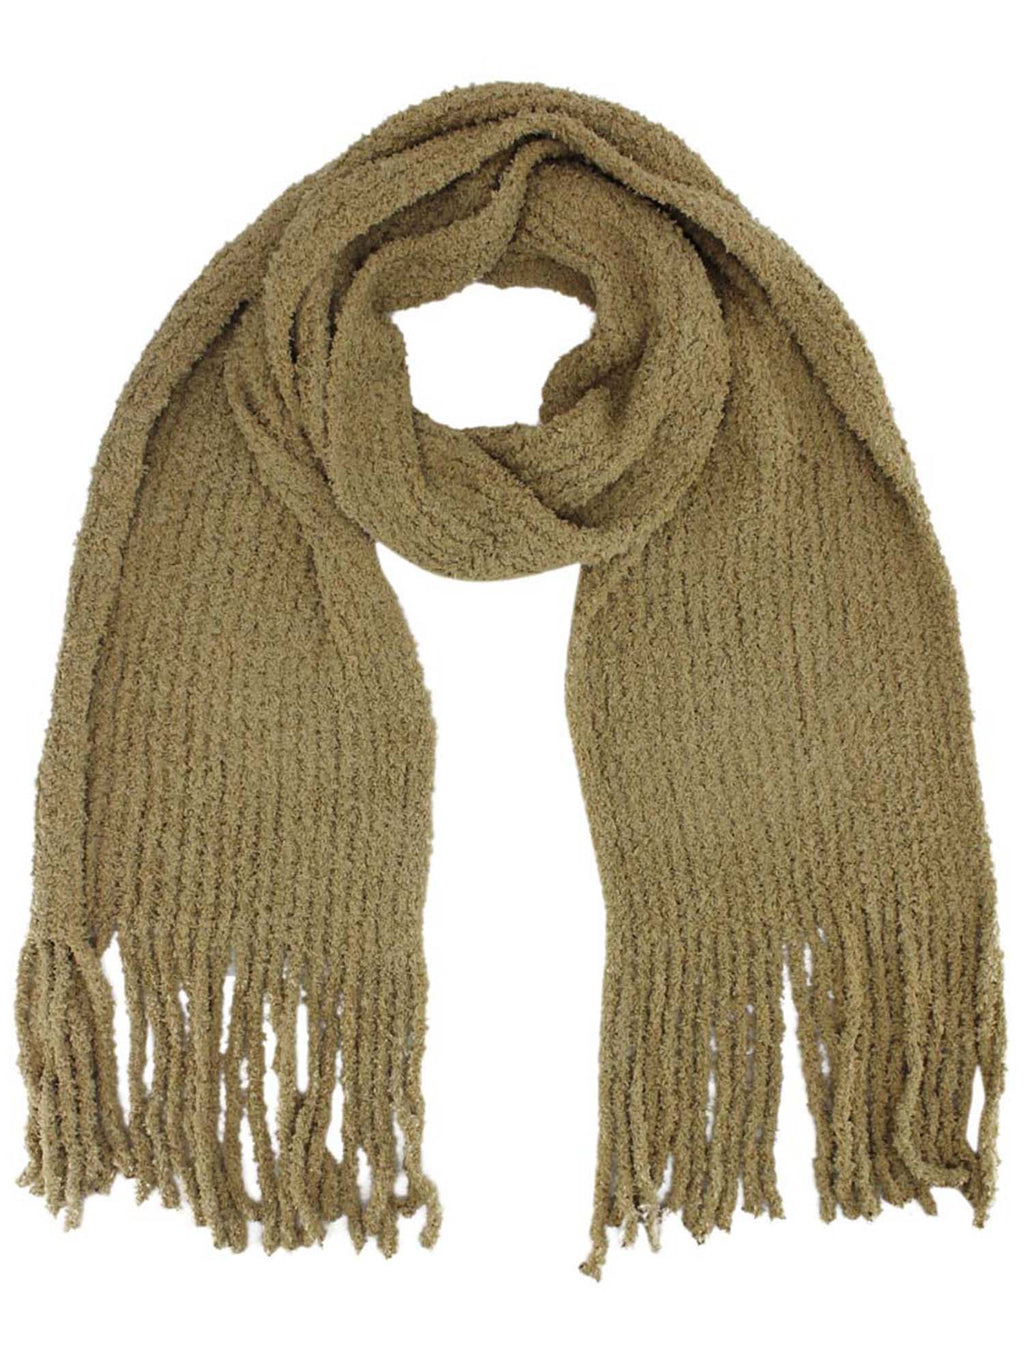 Cozy Long Winter Knit Unisex Scarf With Fringe